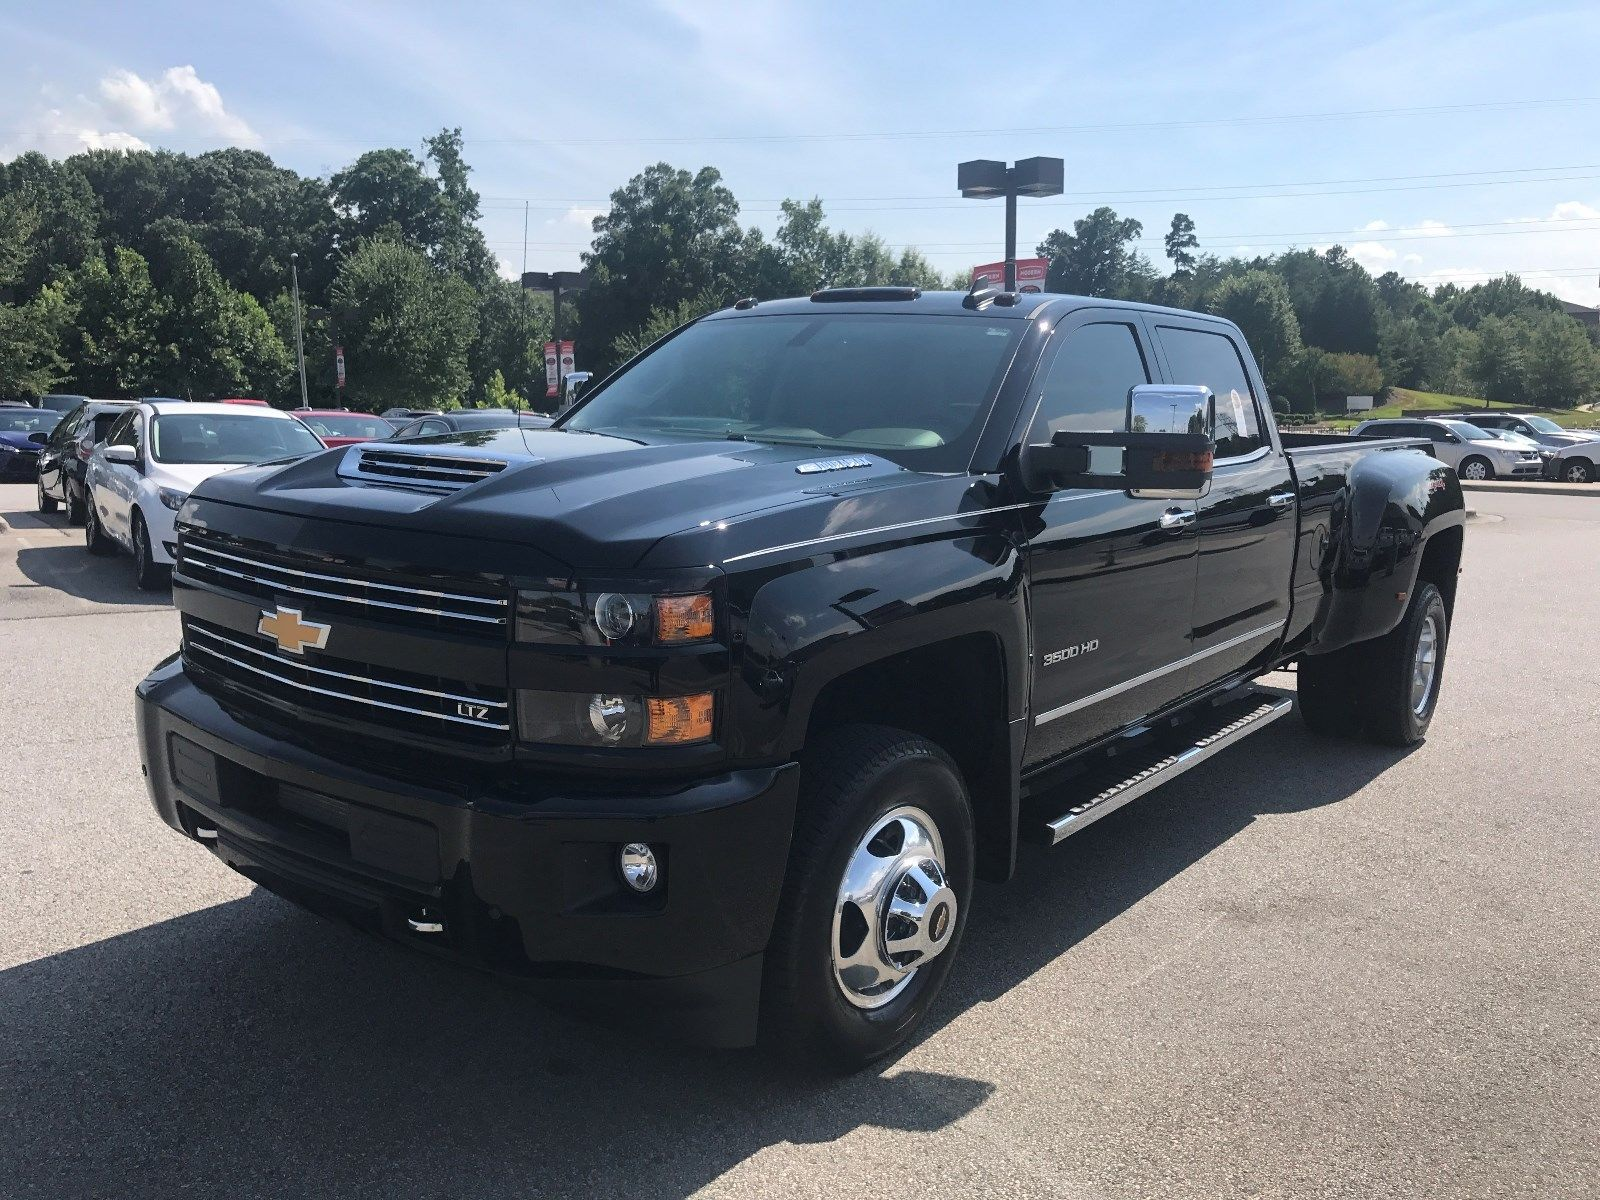 Brand New 2017 Chevrolet Silverado 3500 Ltz Crew Cab For Sale